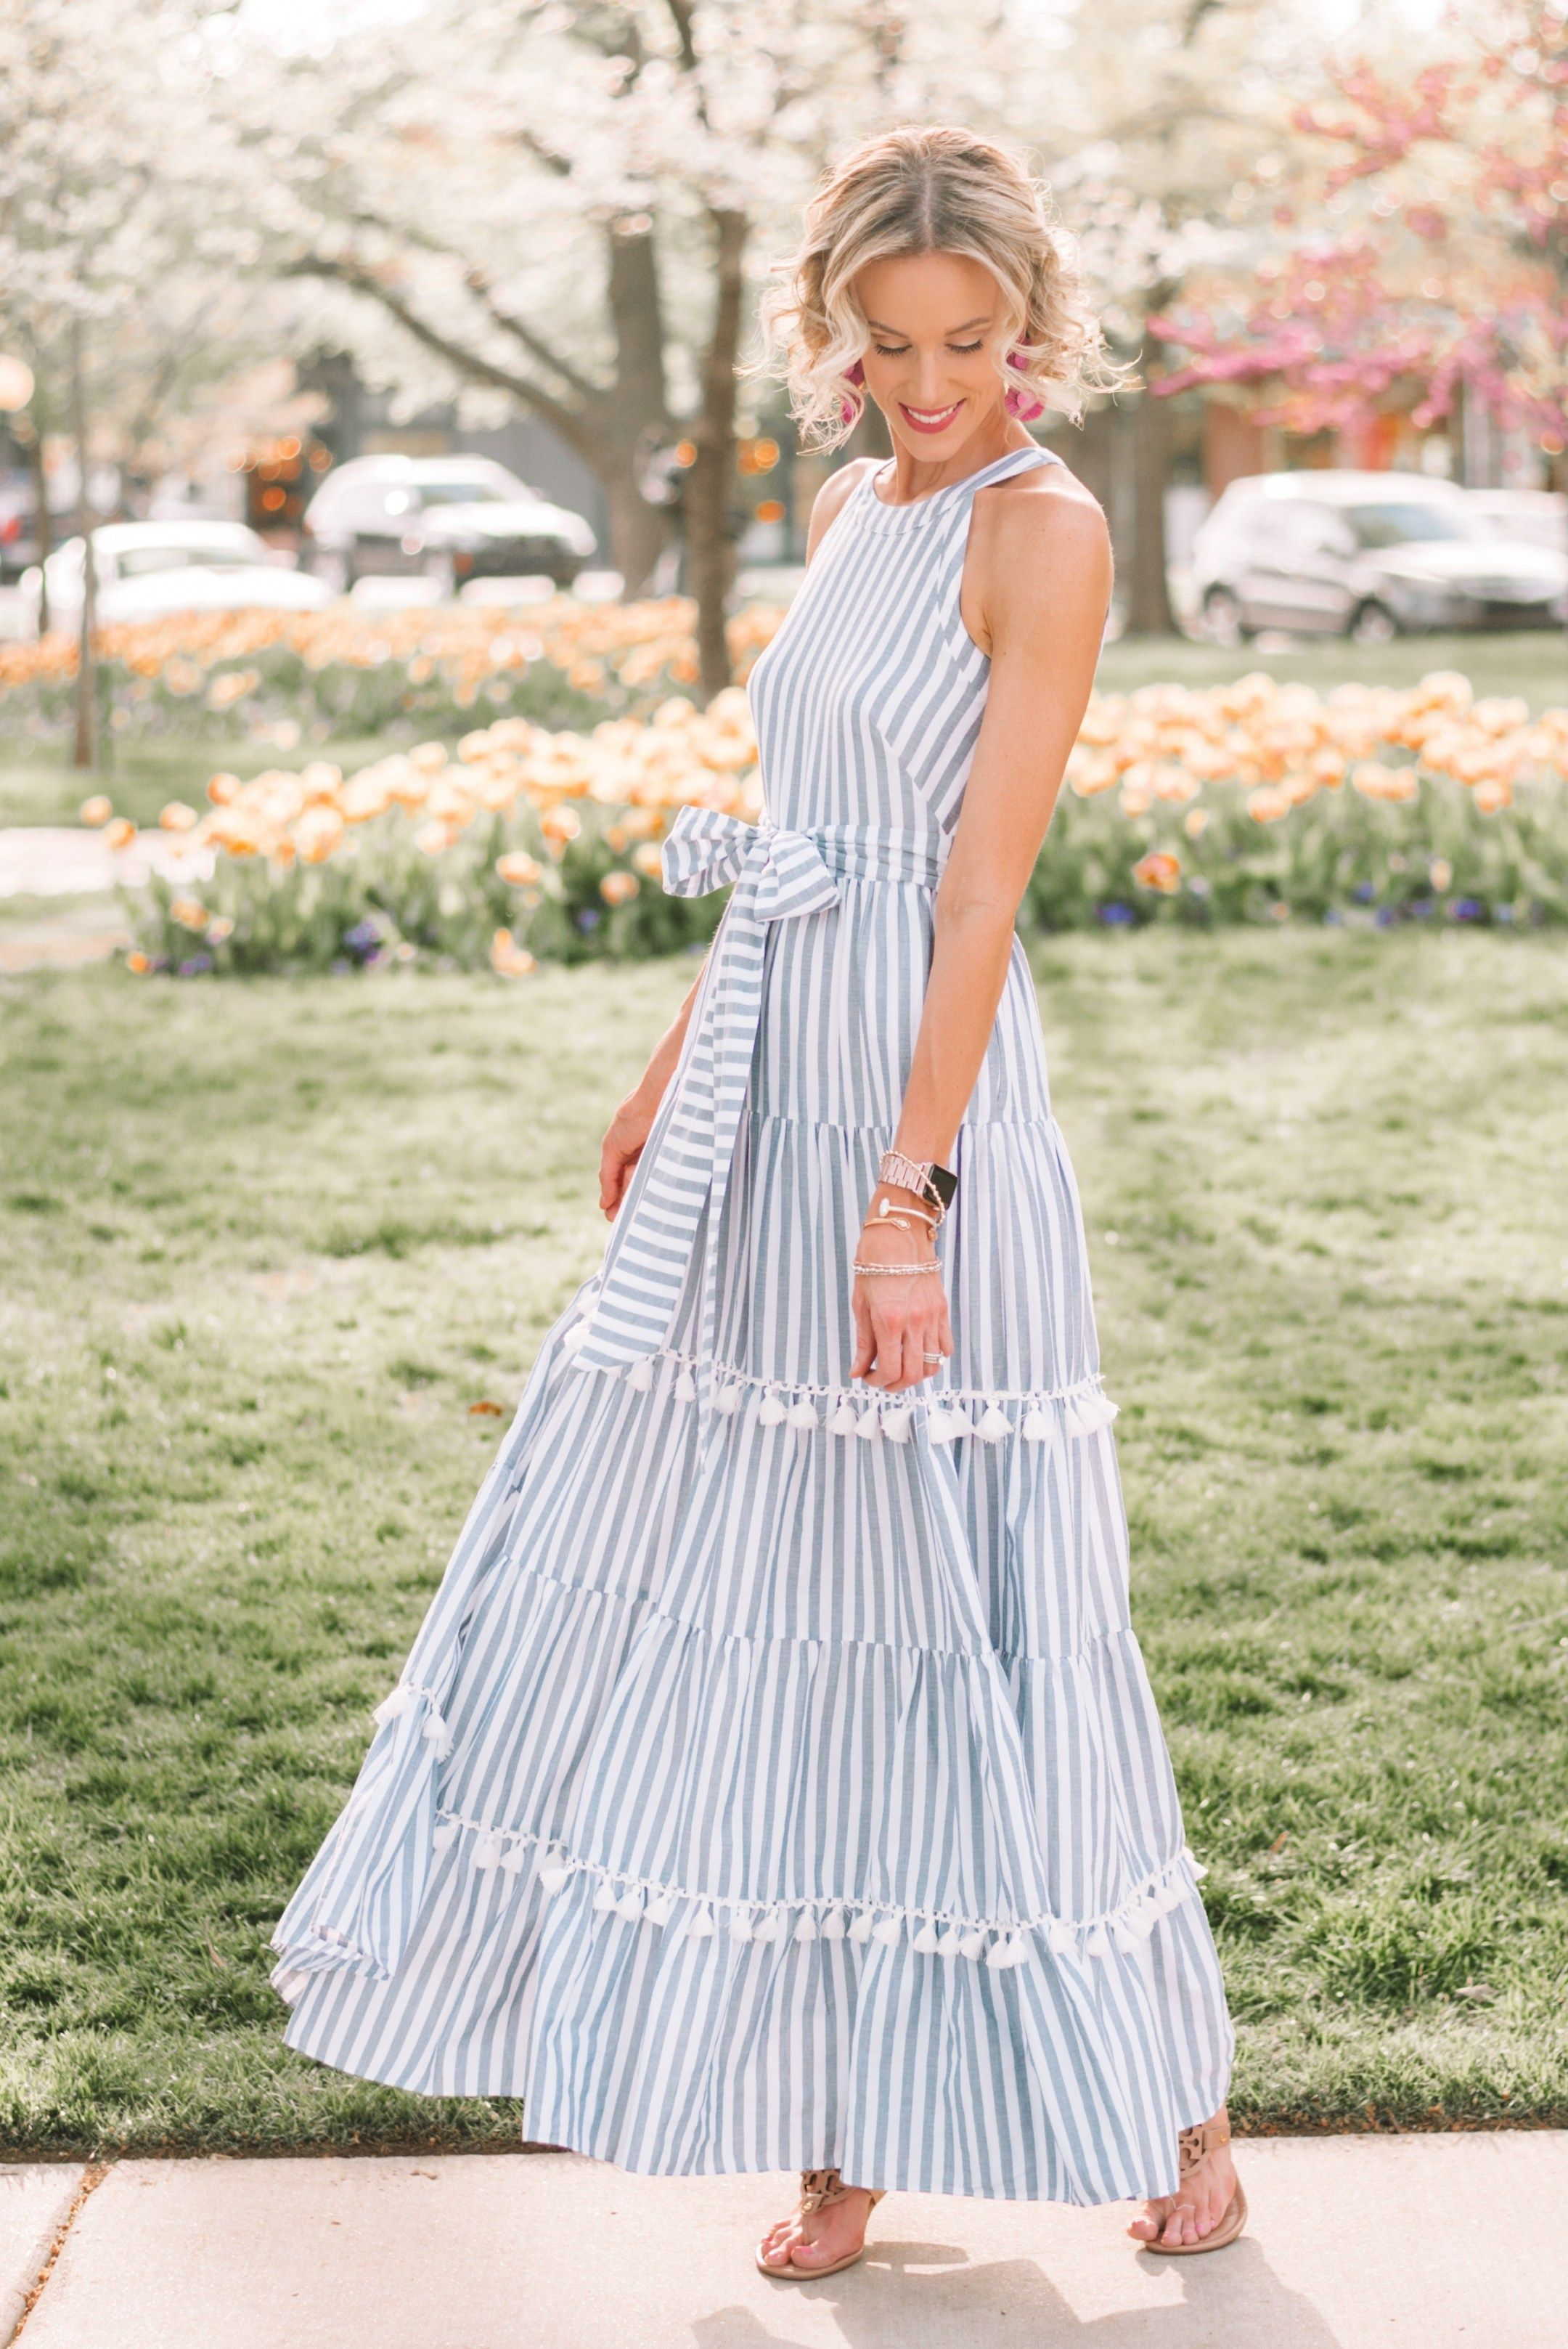 The Maxi Dress Of My Dreams Straight A Style Maxi Dress Flowy Dress Long Long Flowy Maxi Dresses [ 3235 x 2160 Pixel ]